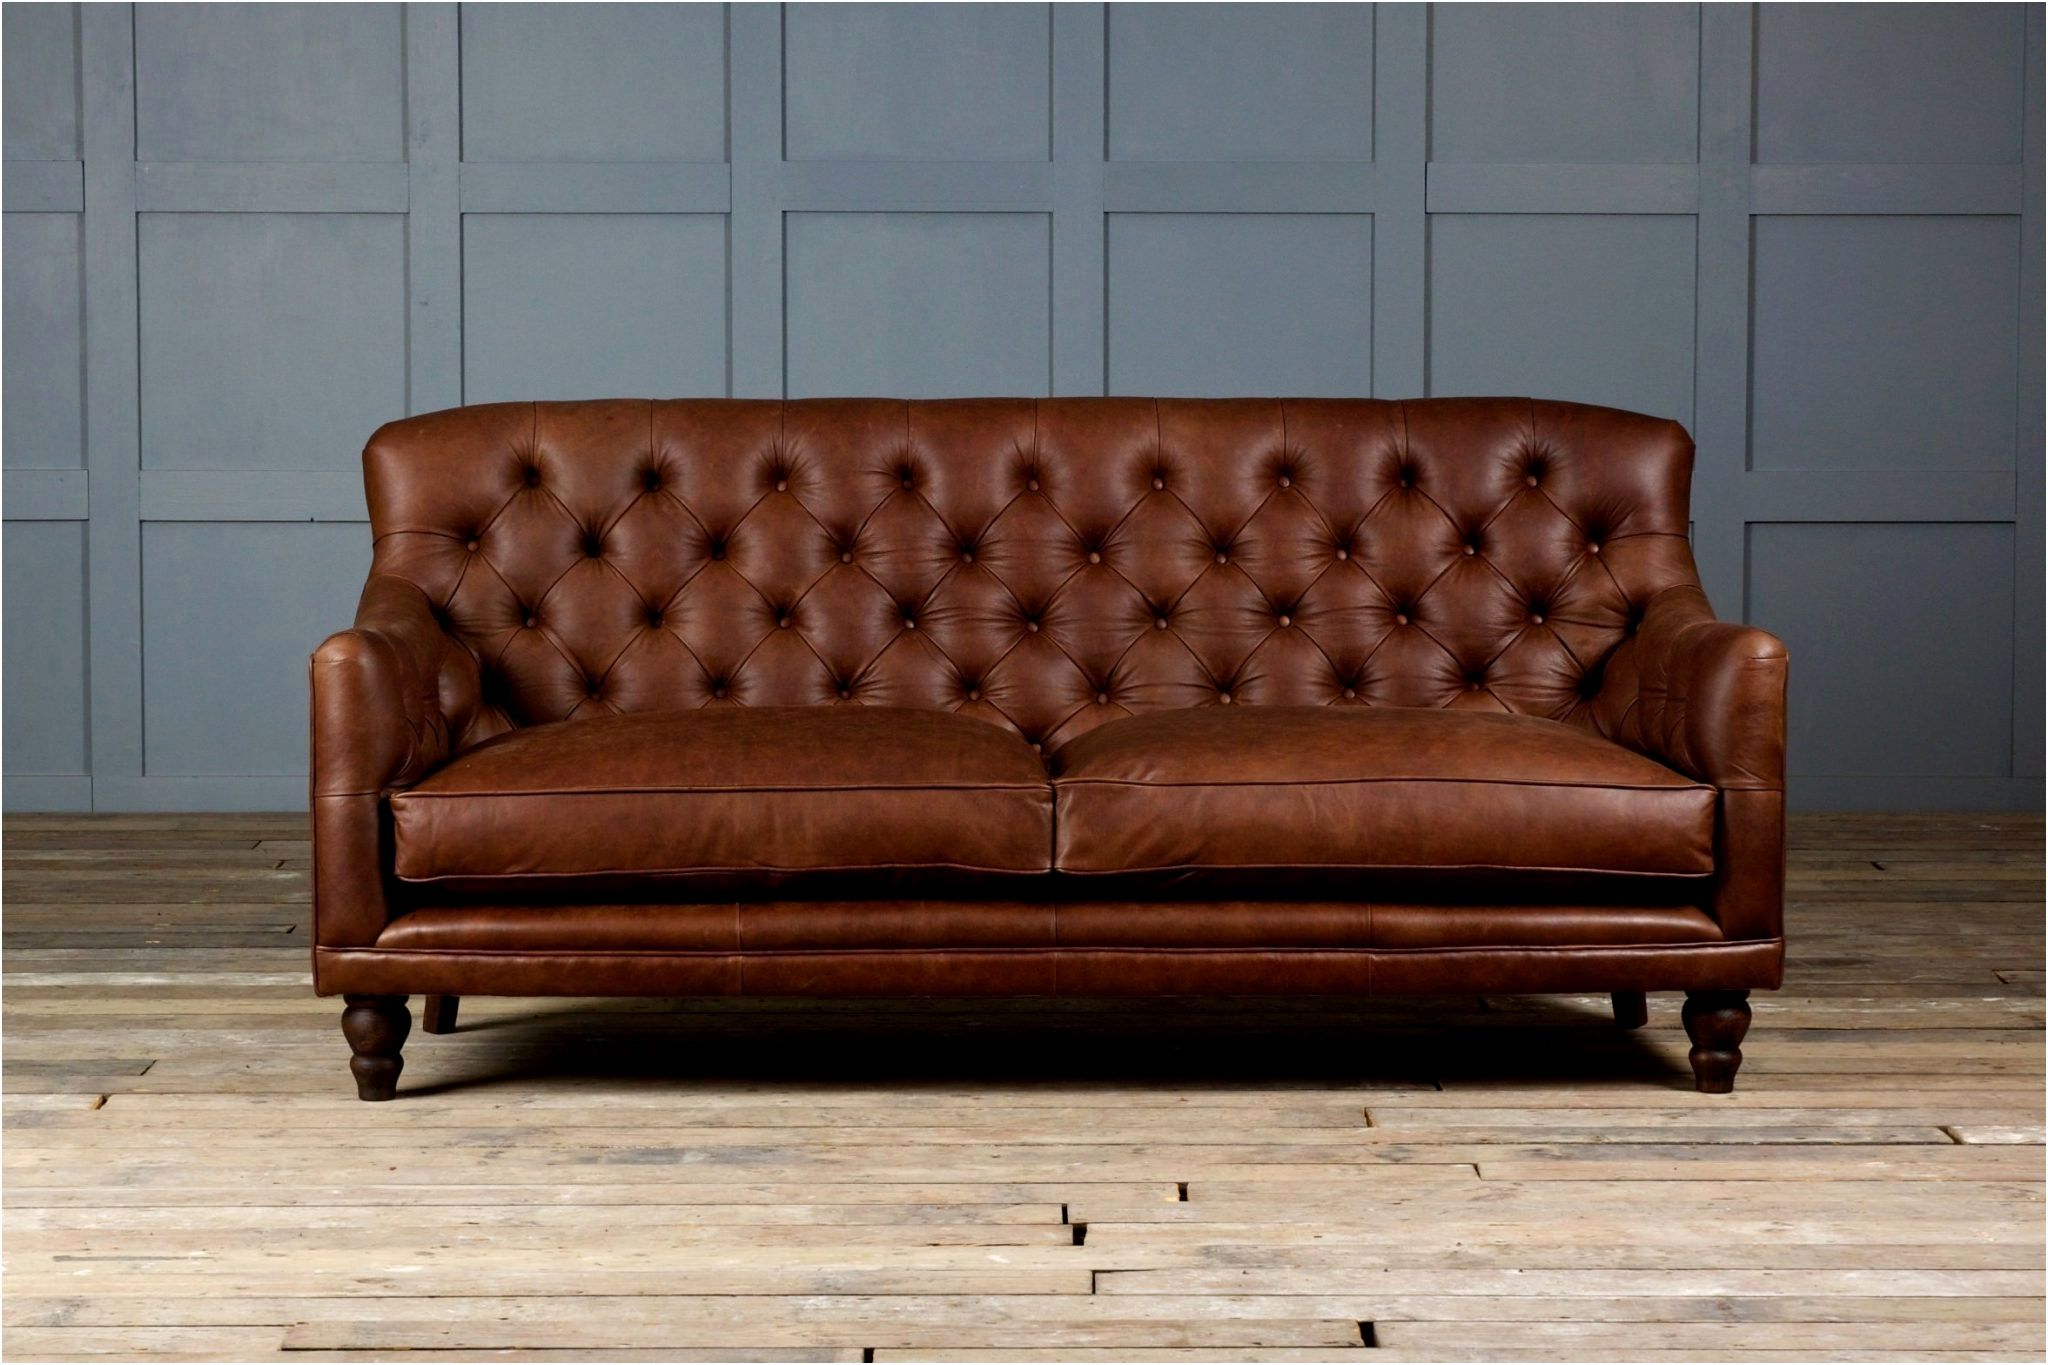 New the Leather sofa pany the leather sofa co unique